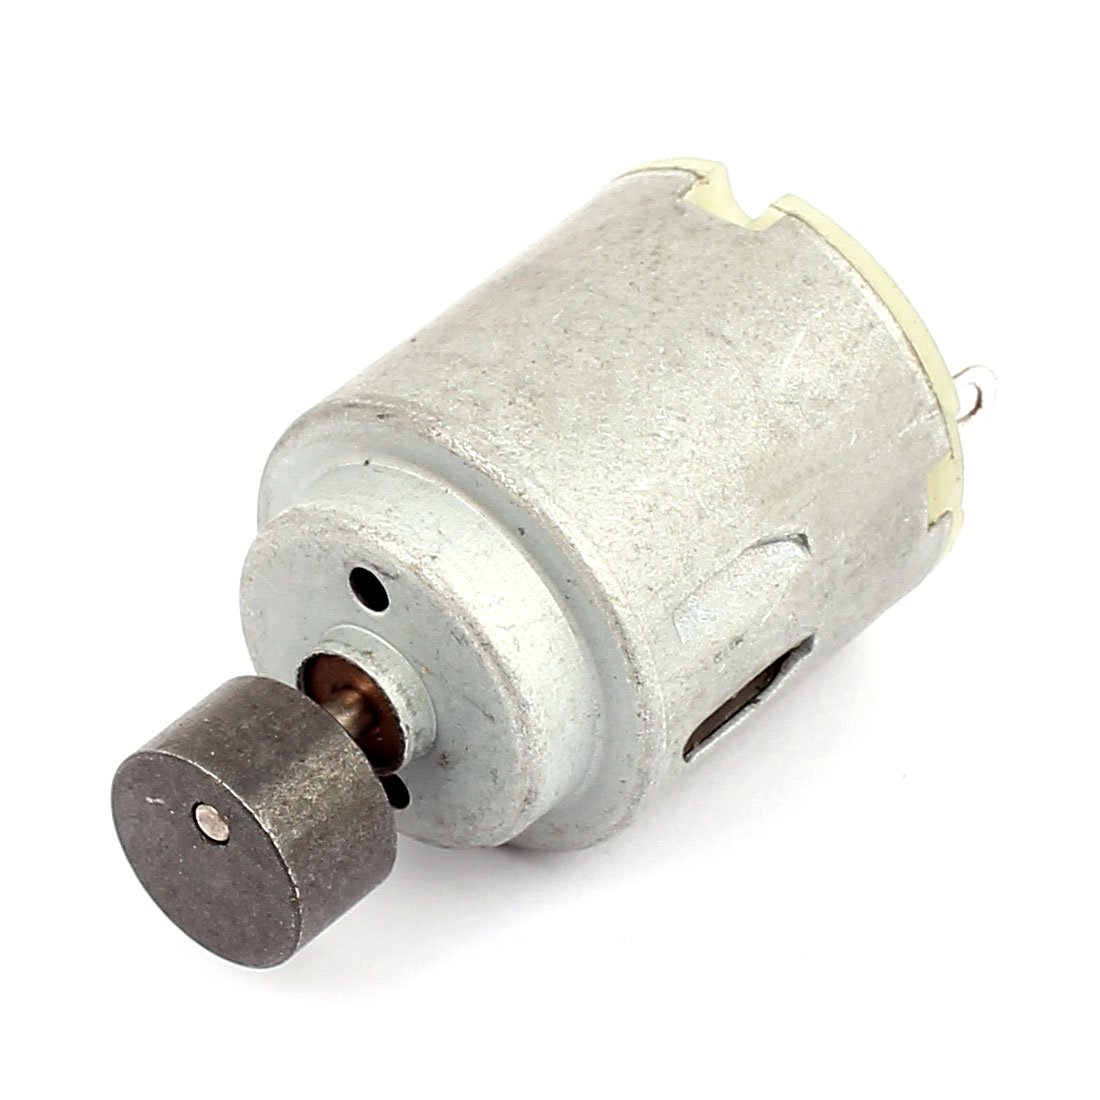 sourcingmap® DC 1.5-6V 7500RPM Cylinder Shape Vibration Motor R140 for Massager US-SA-AJD-360051